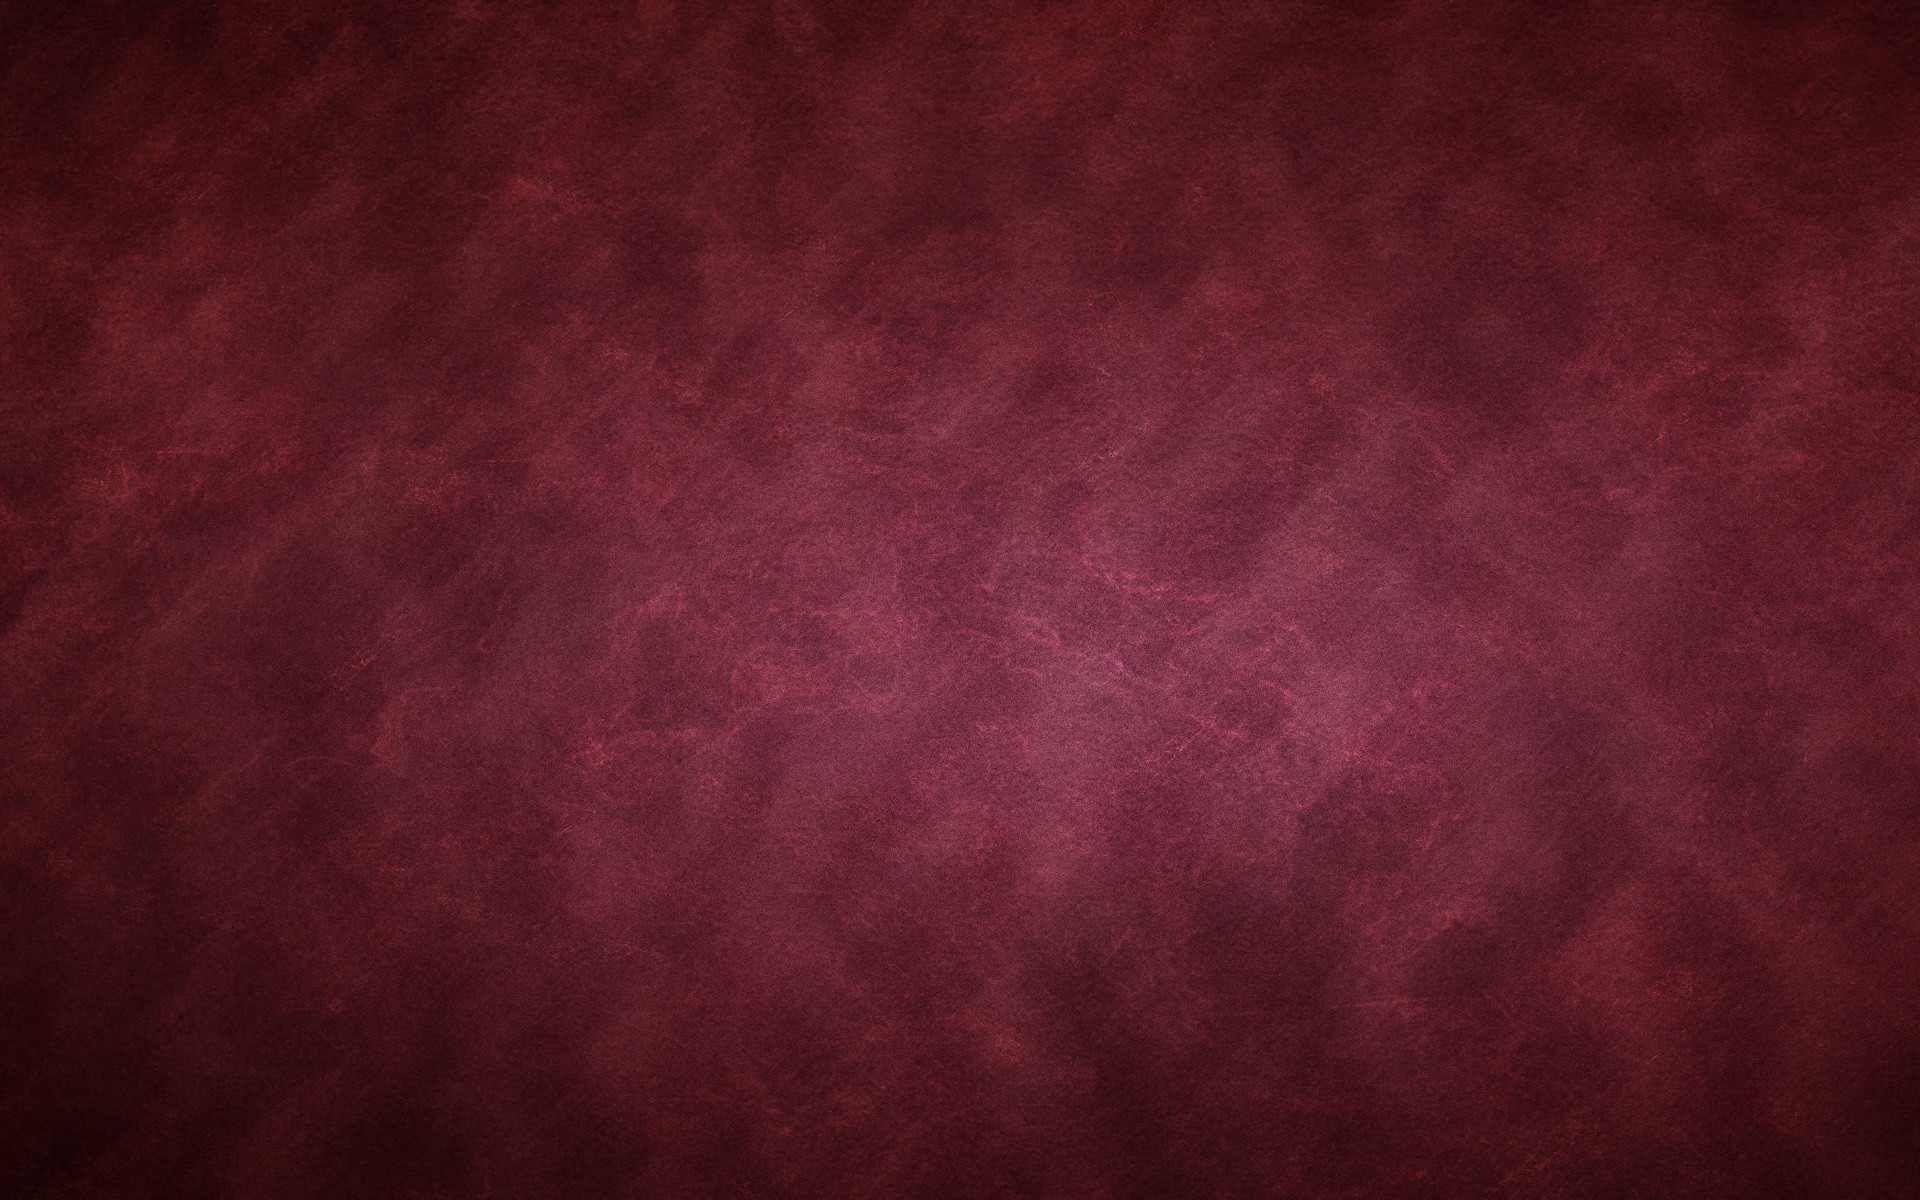 burgundy wallpaper background 51 images